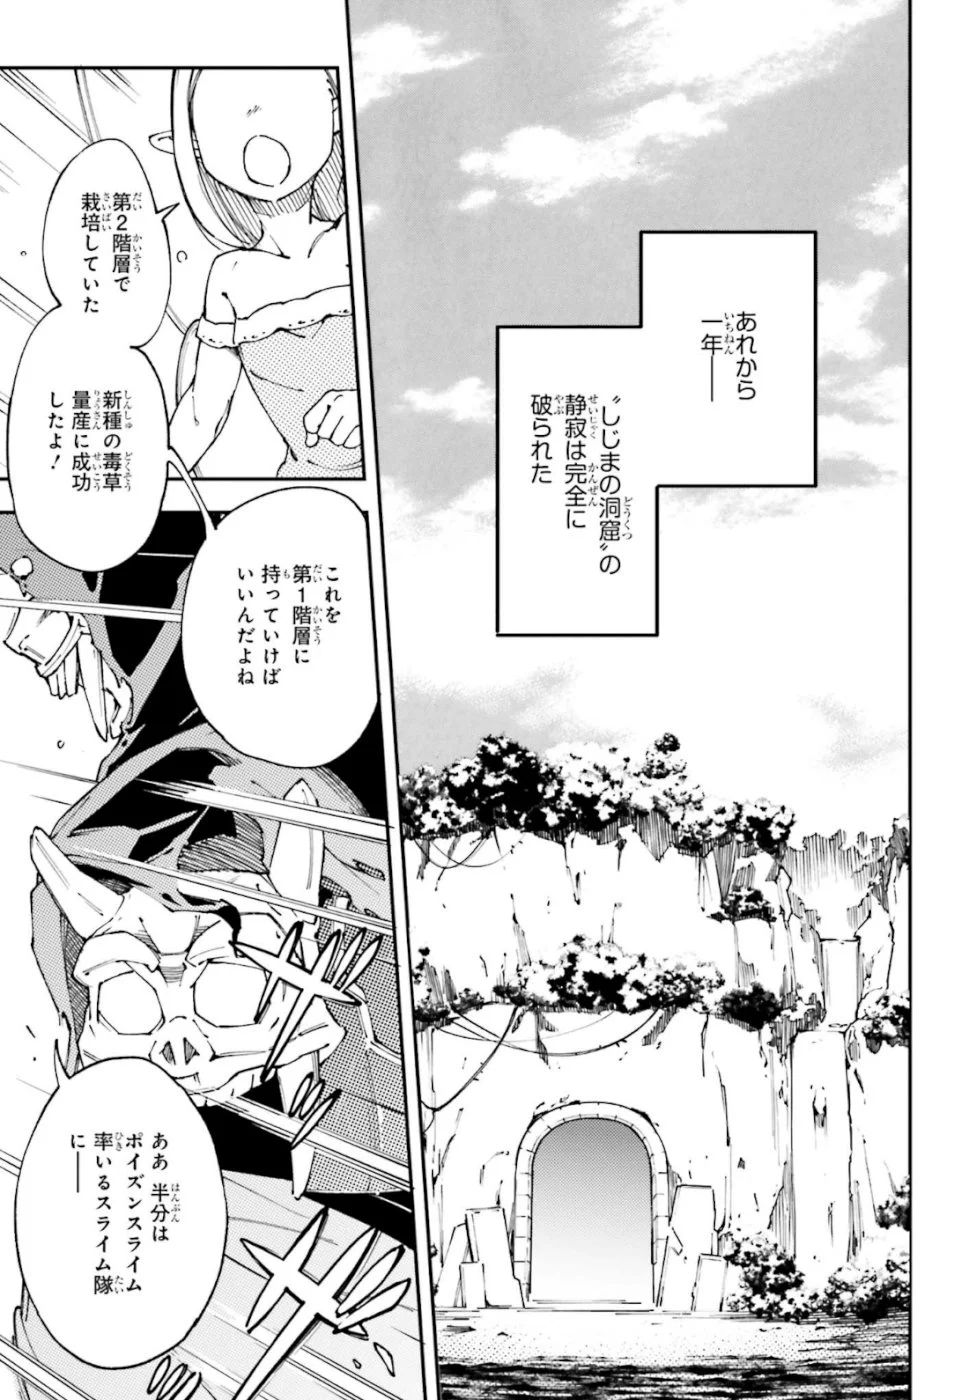 Manga Raw Naka Boss-san Level 99 Saikyou no Buka-tachi to Tomo ni Nishuume Totsunyuu Chapter 03